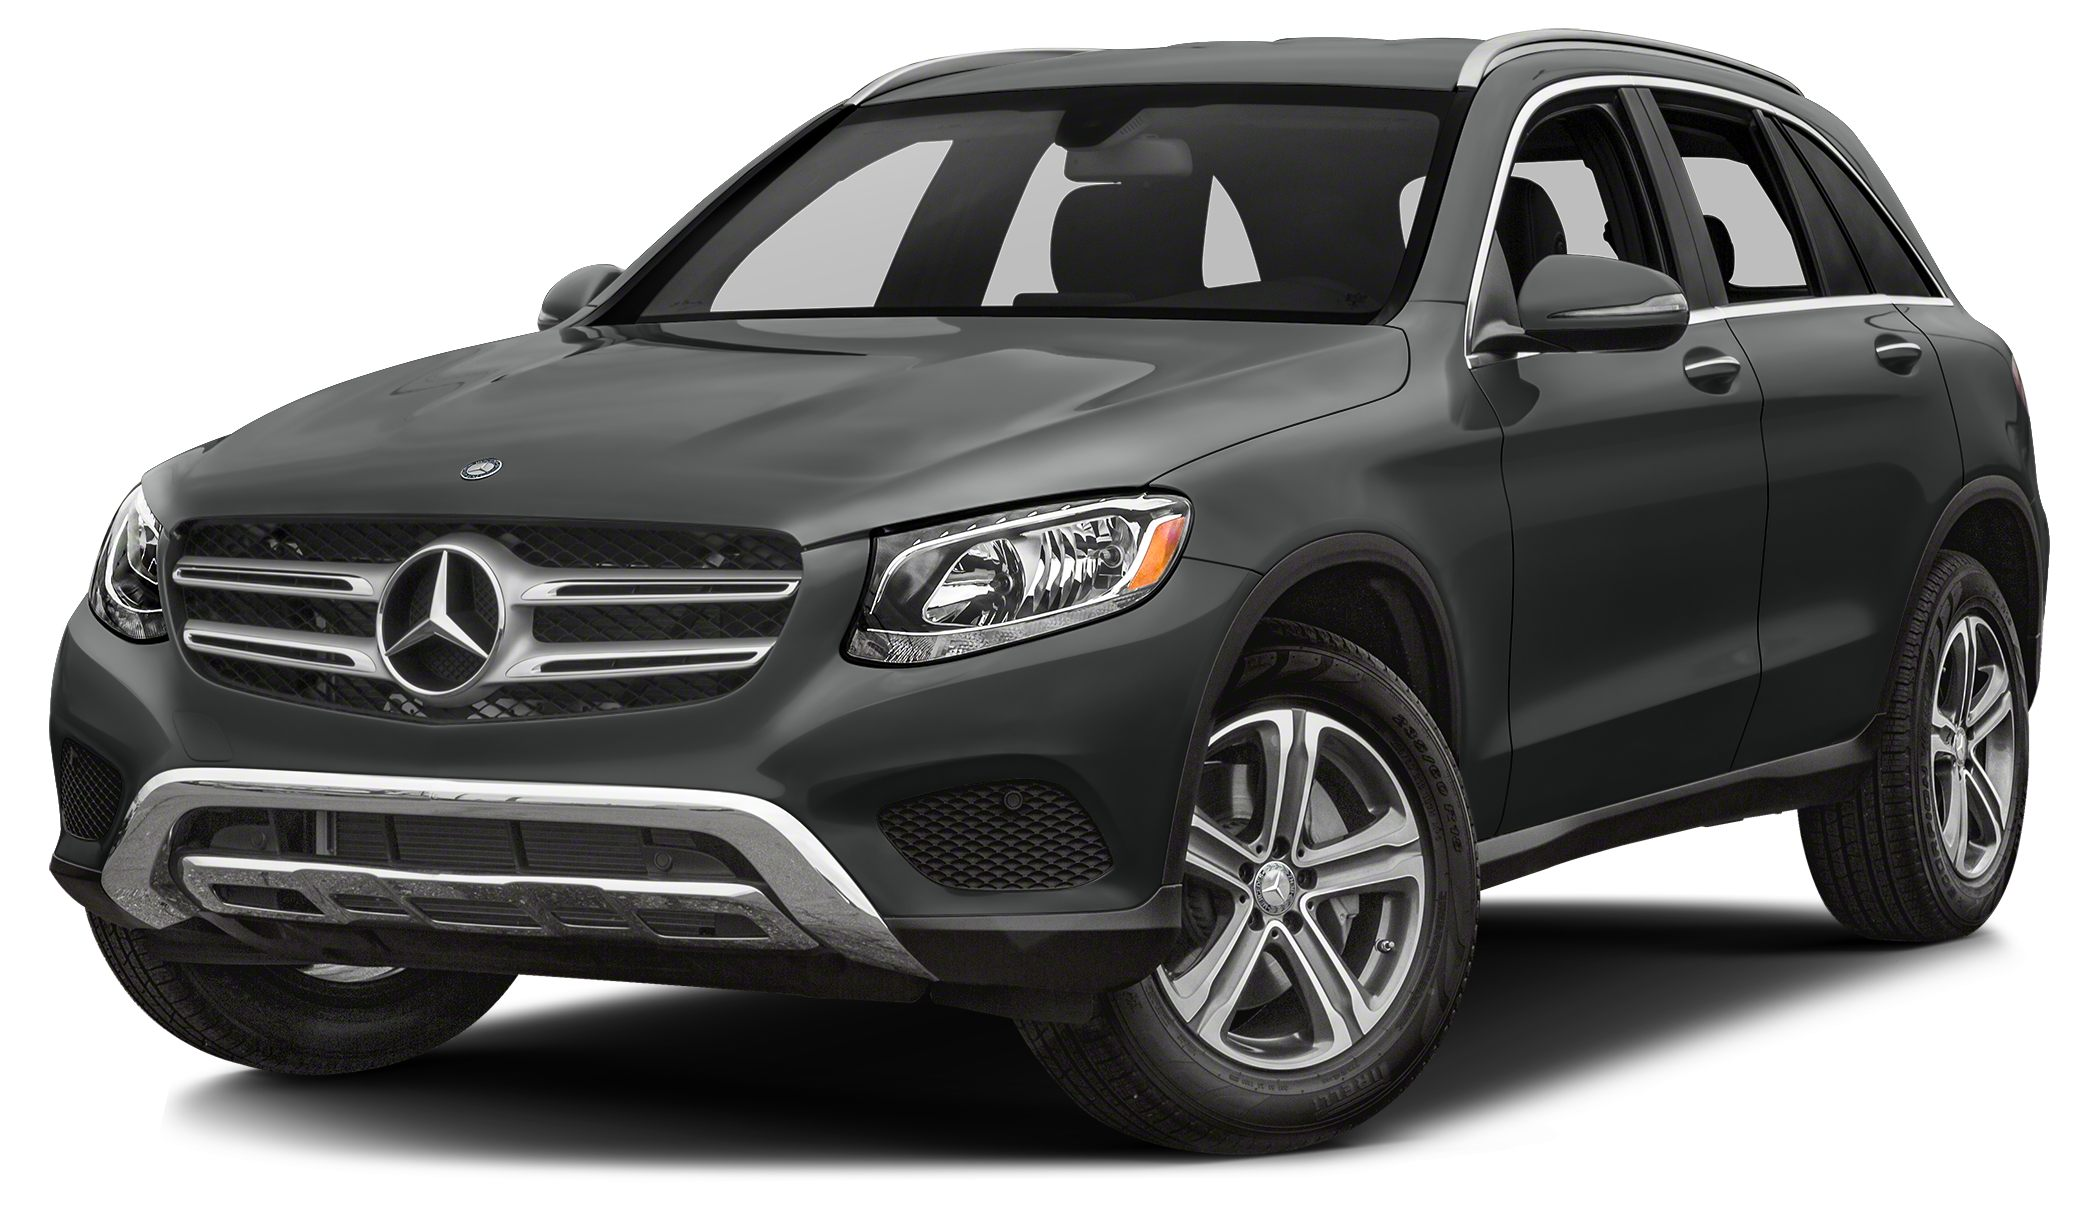 2016 MERCEDES GLC-Class GLC300 Miles 7Color Selenite Gray Metallic Stock 95528 VIN WDC0G4JB3